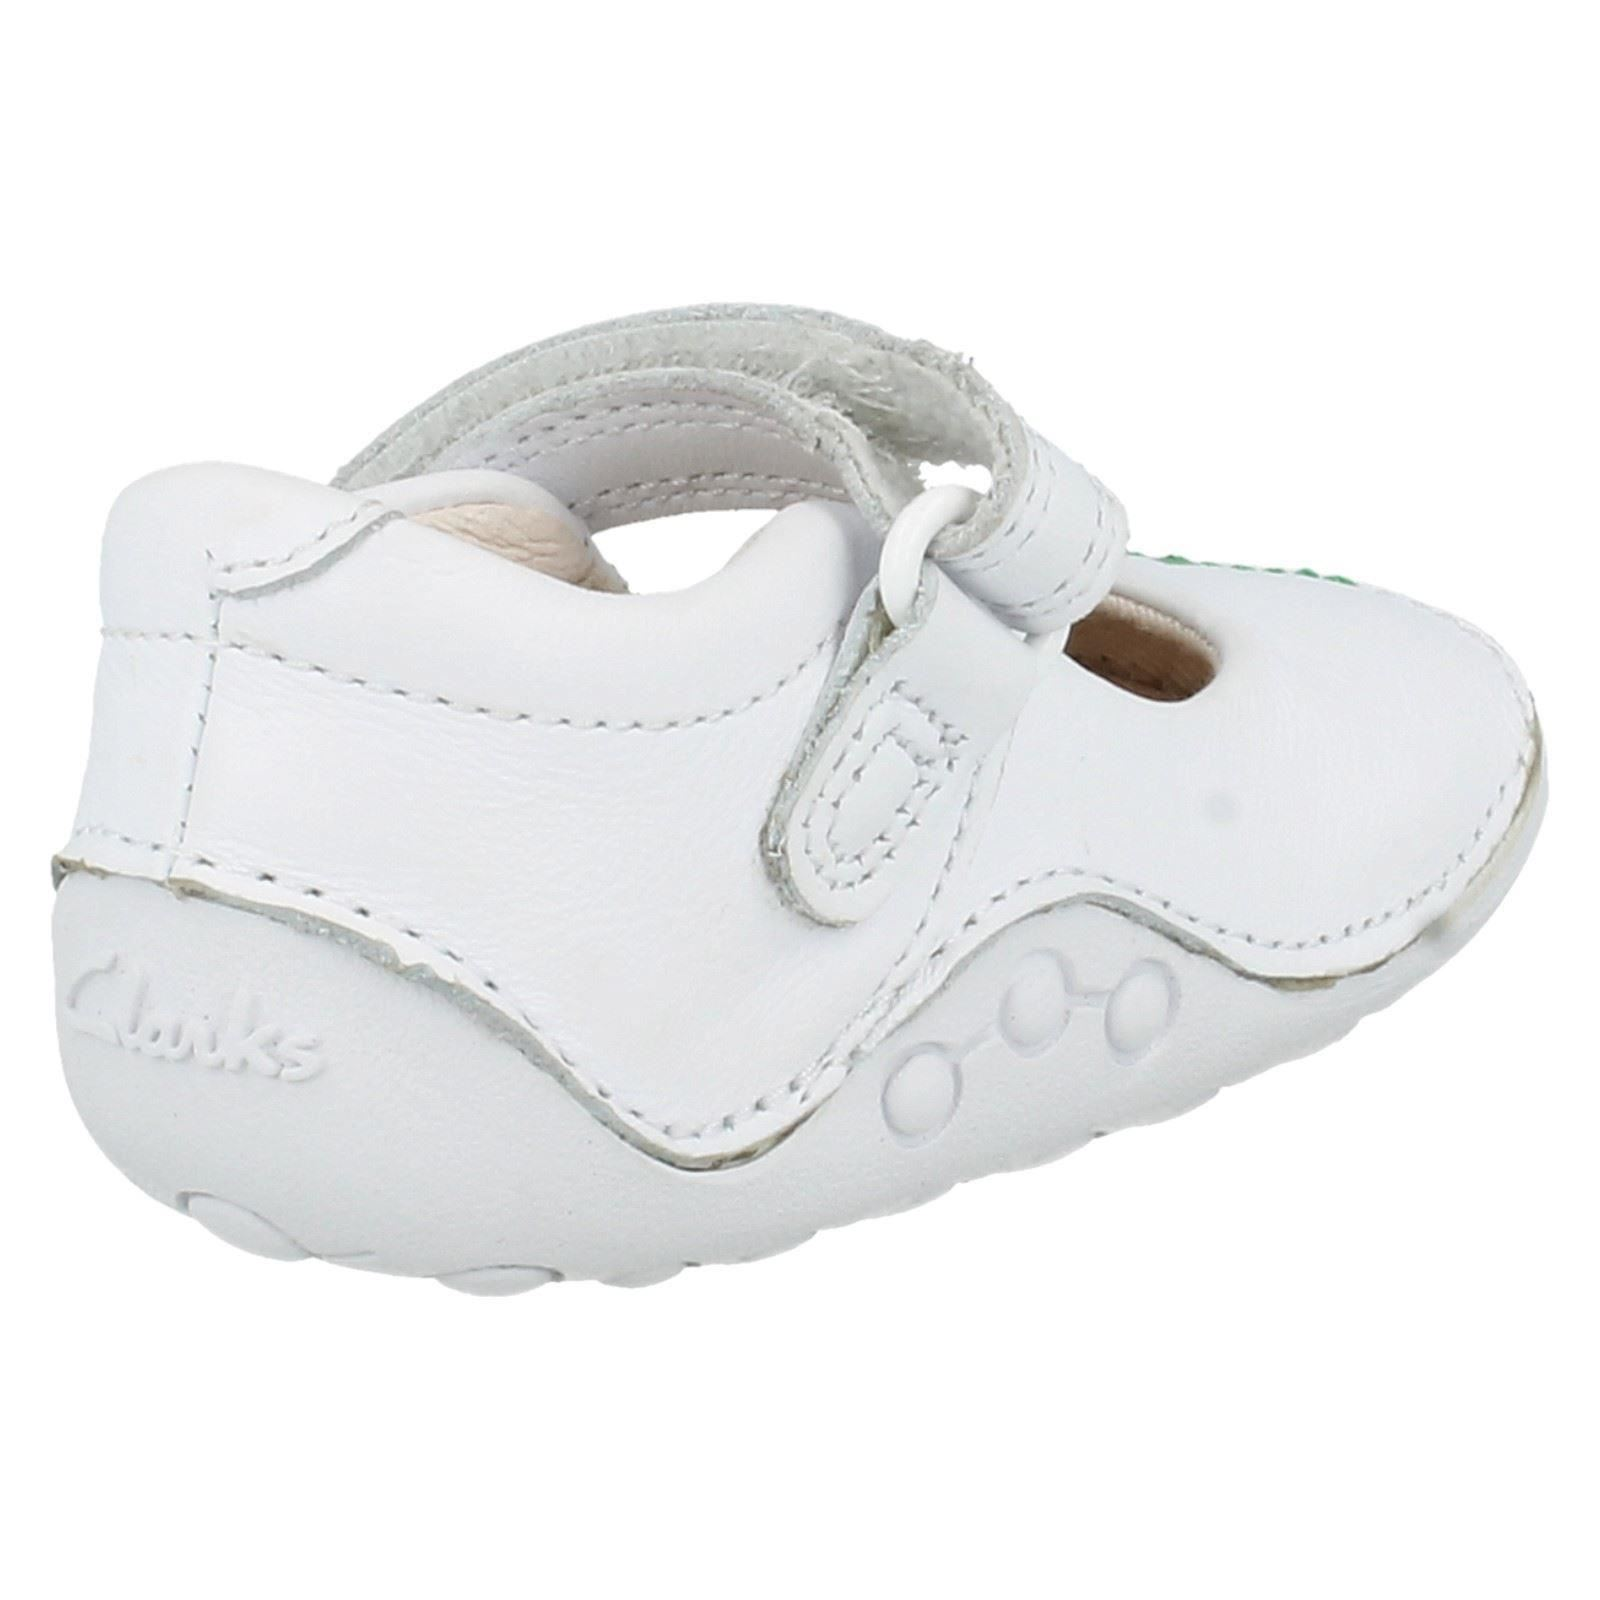 Girls Clarks First Shoes Style - Little Jam